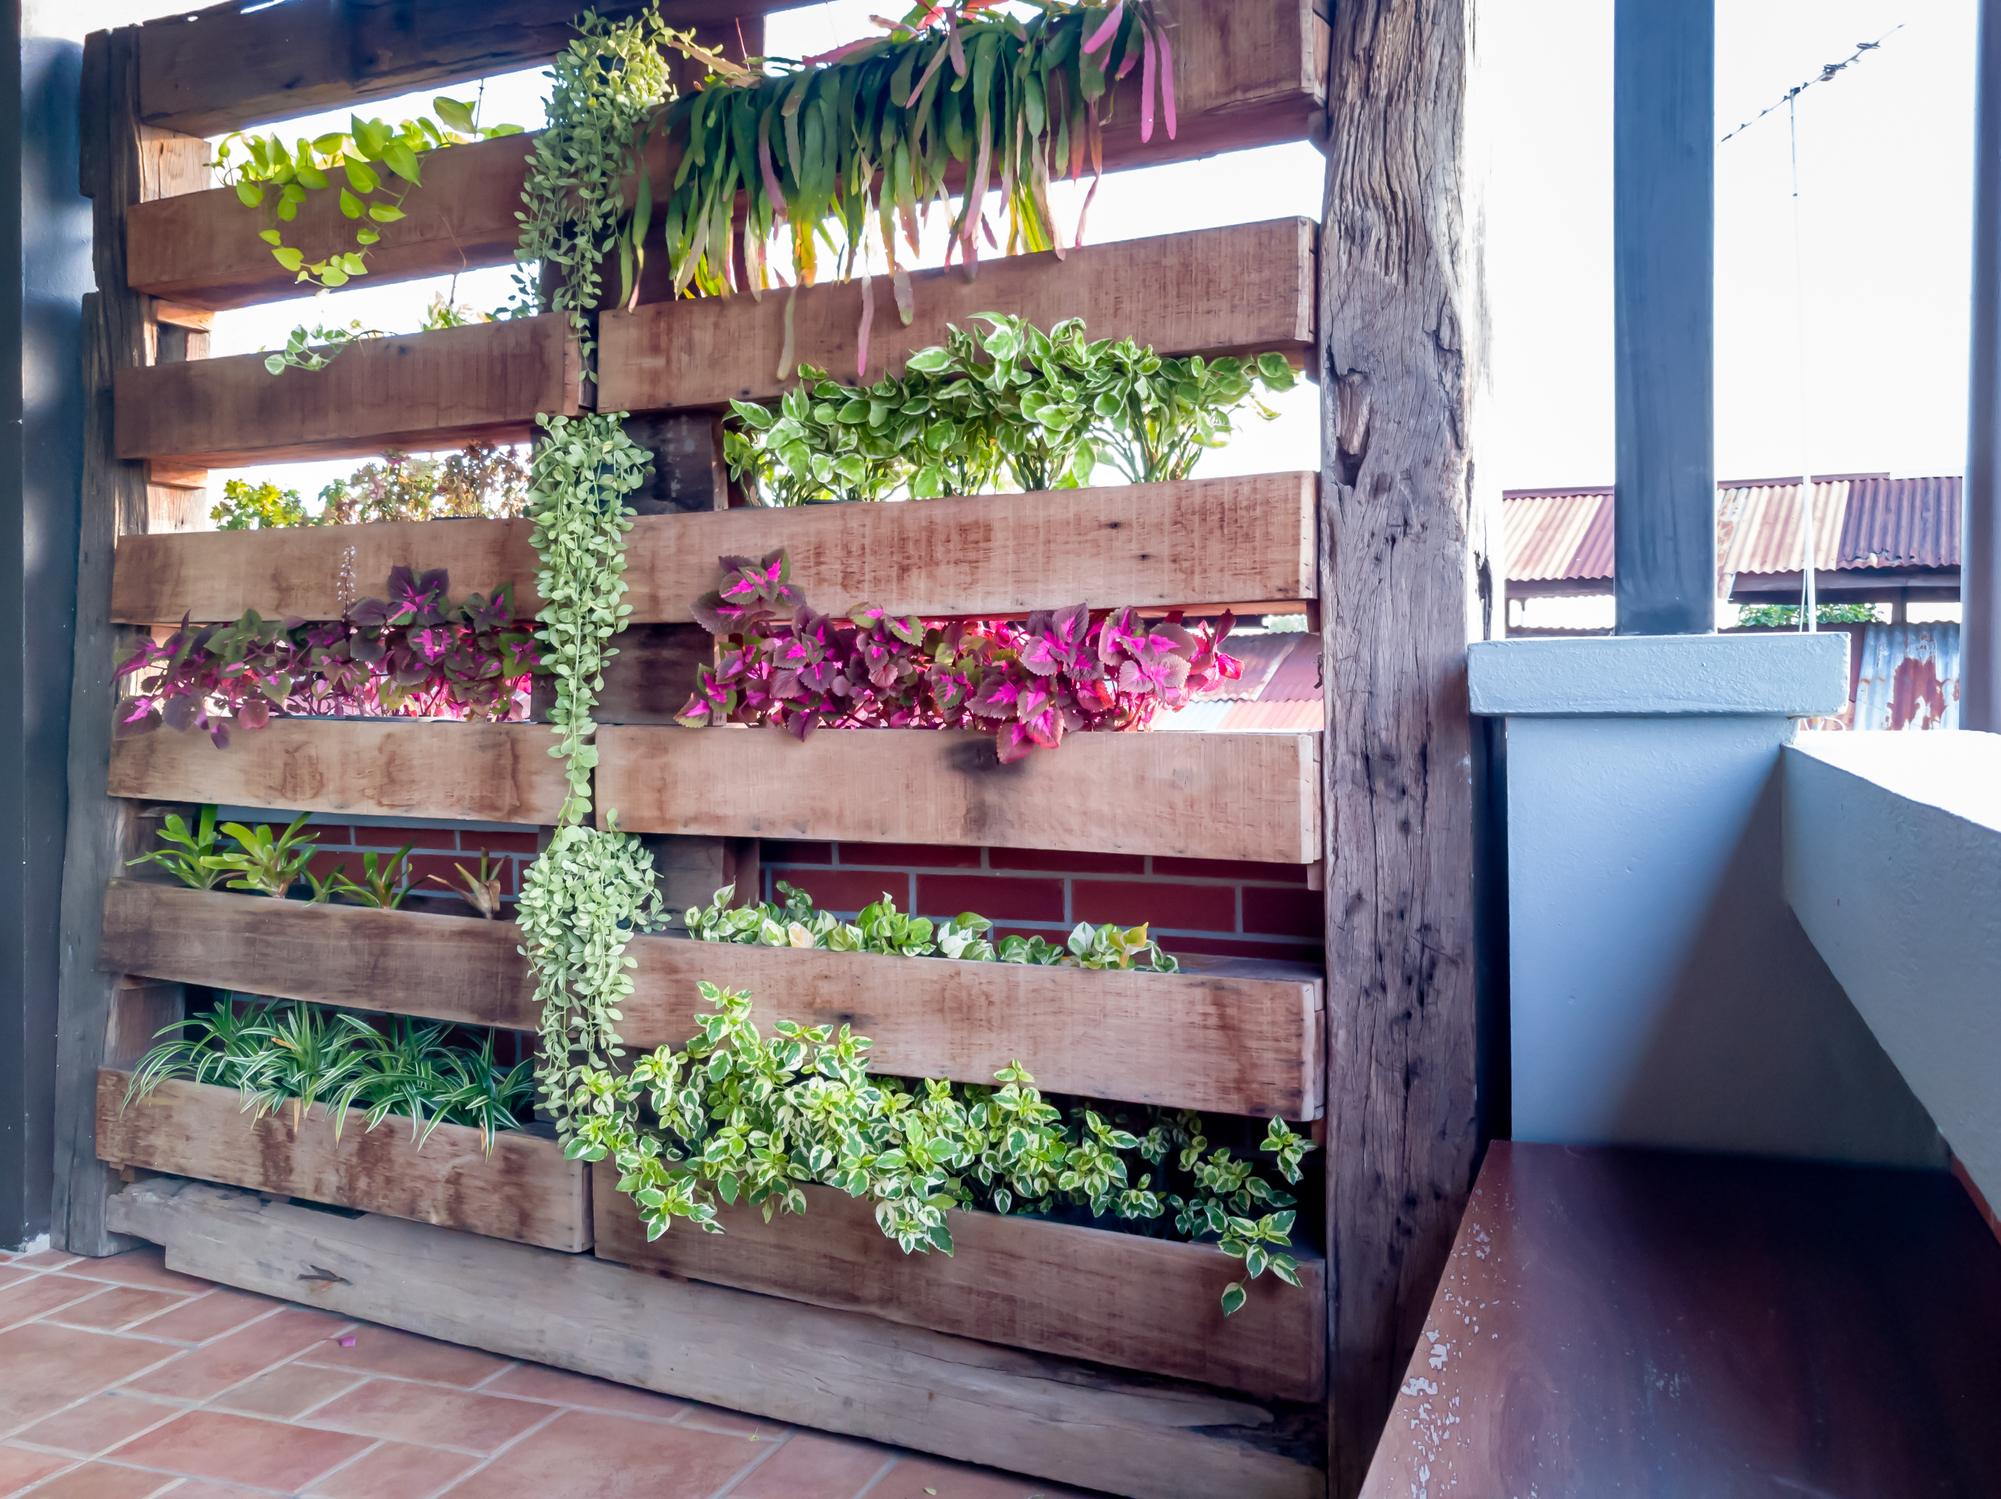 Vertical gardening is practical and attractive